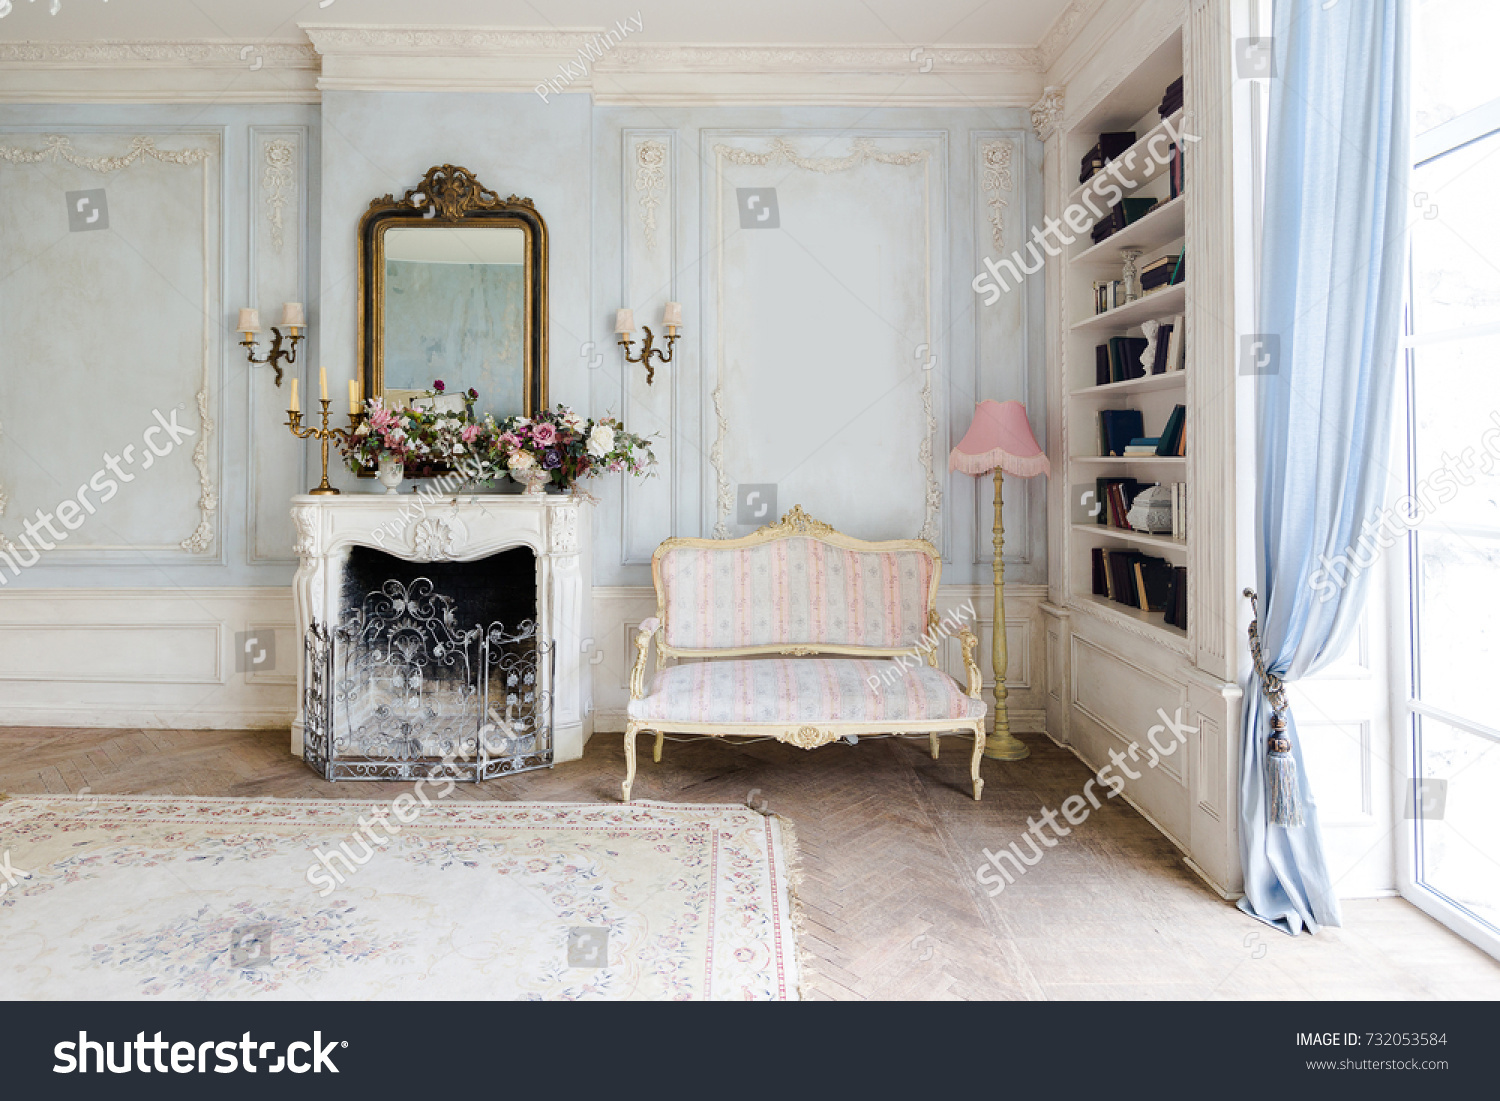 Cozy Interior Living Room Chic Beautiful Stock Photo (Royalty Free ...